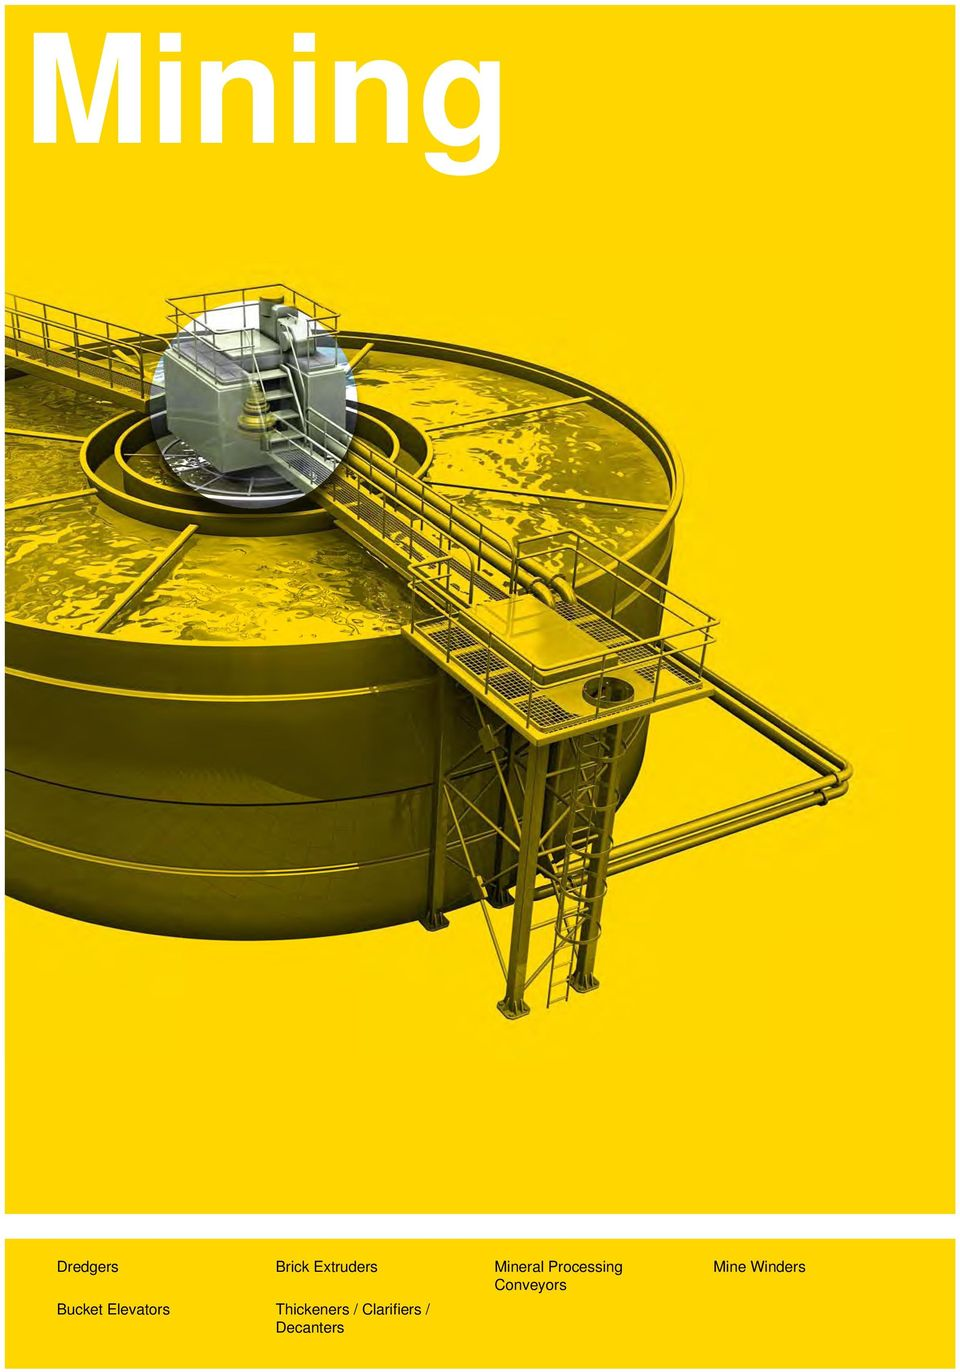 Bucket Elevators Thickeners /